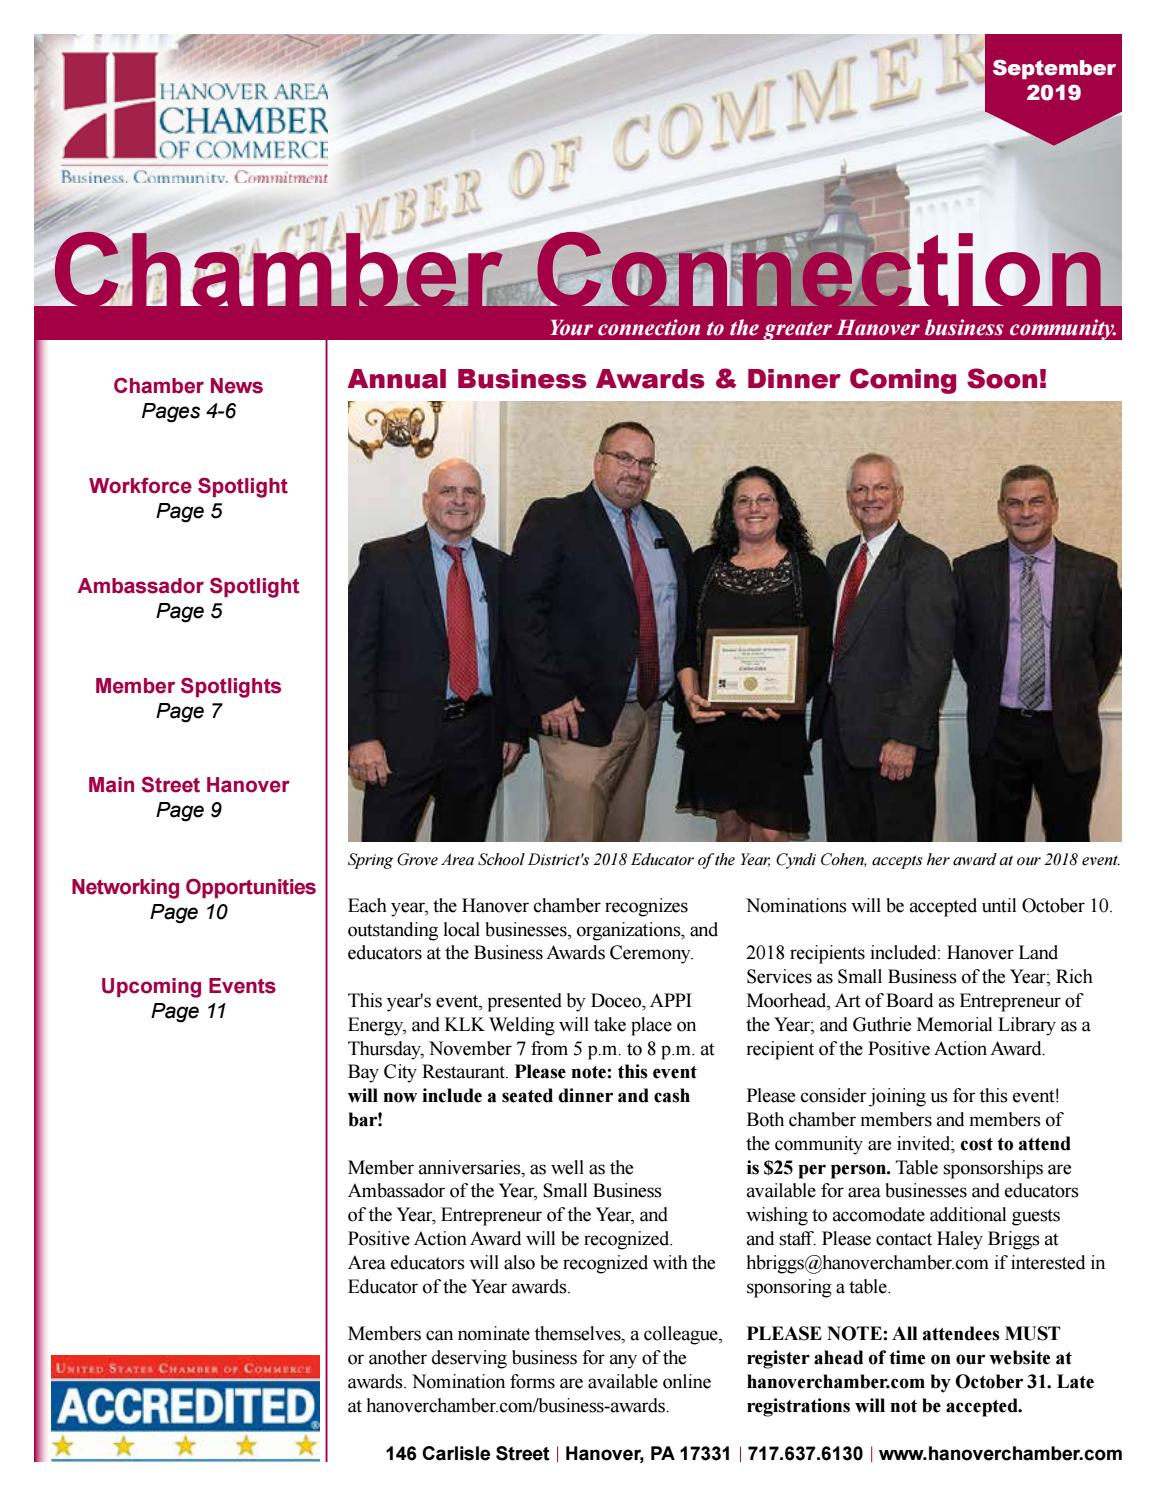 La Cucina Restaurant Hanover Pa September 2019 Chamber Connection Newsletter By Hanover Area